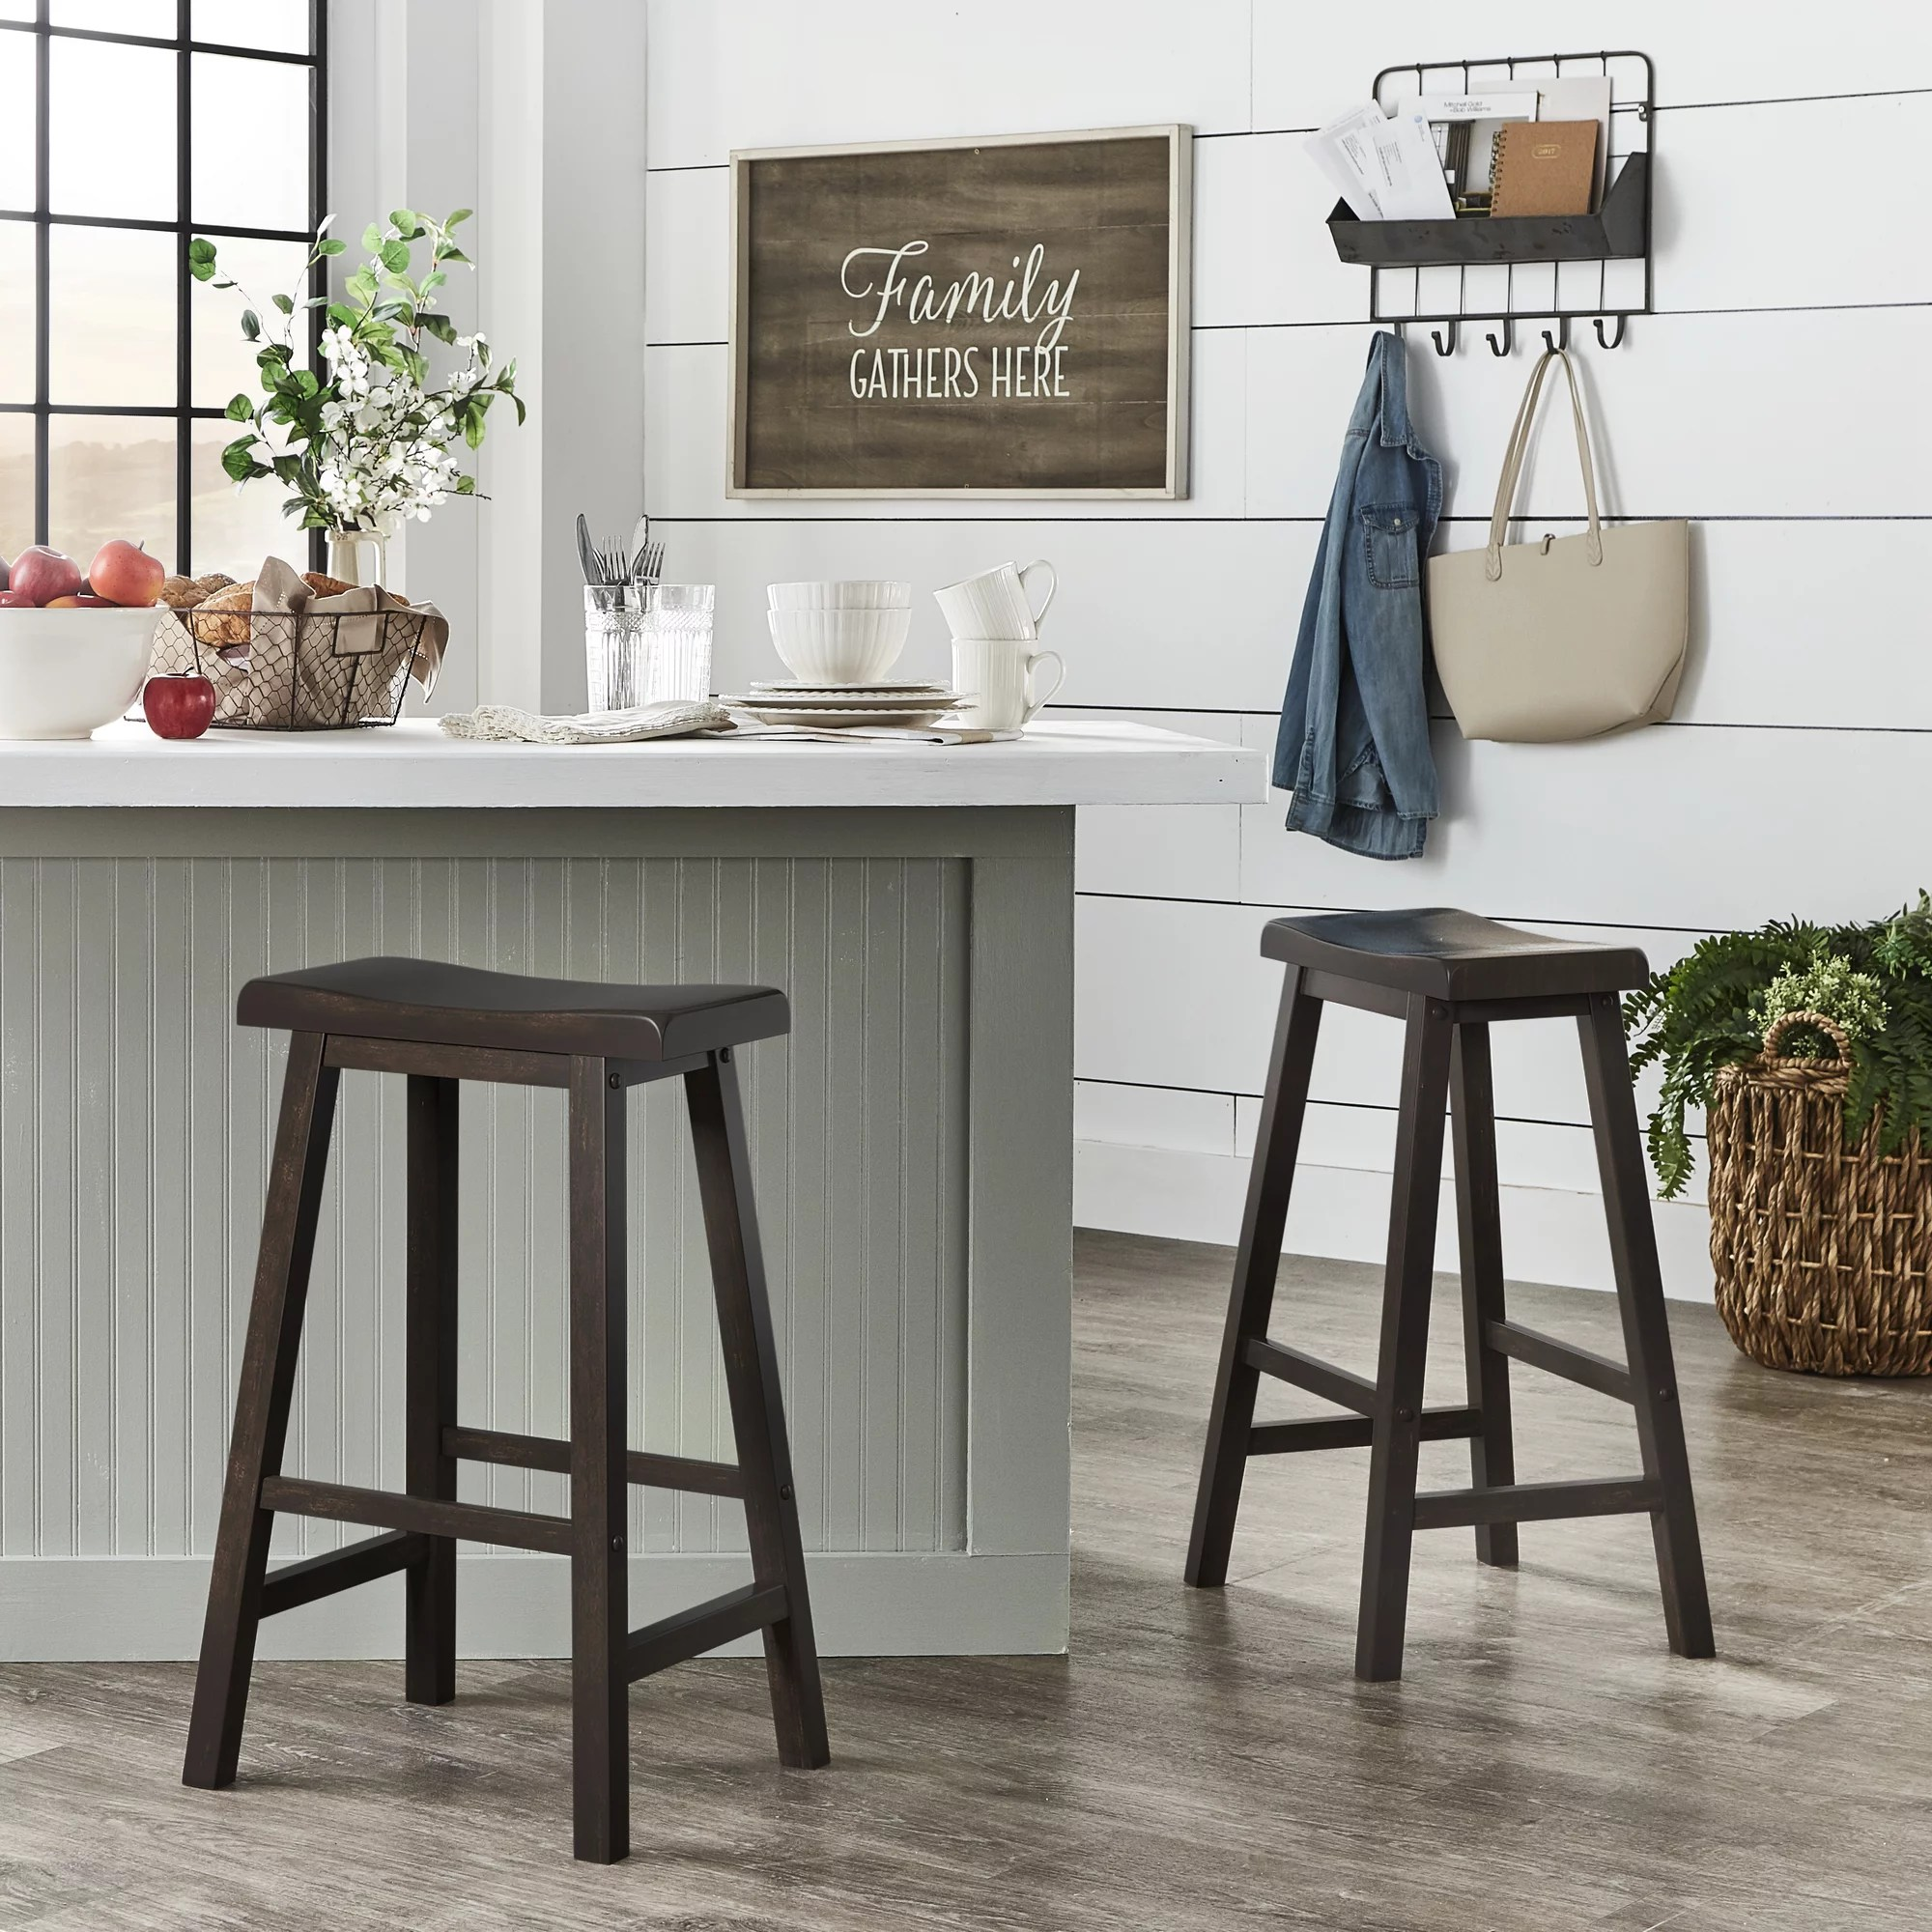 Weston Home Ashby Saddle Seat Backless Wood Bar Stools Set Of 2 Antique Berry Red Walmart Com Walmart Com